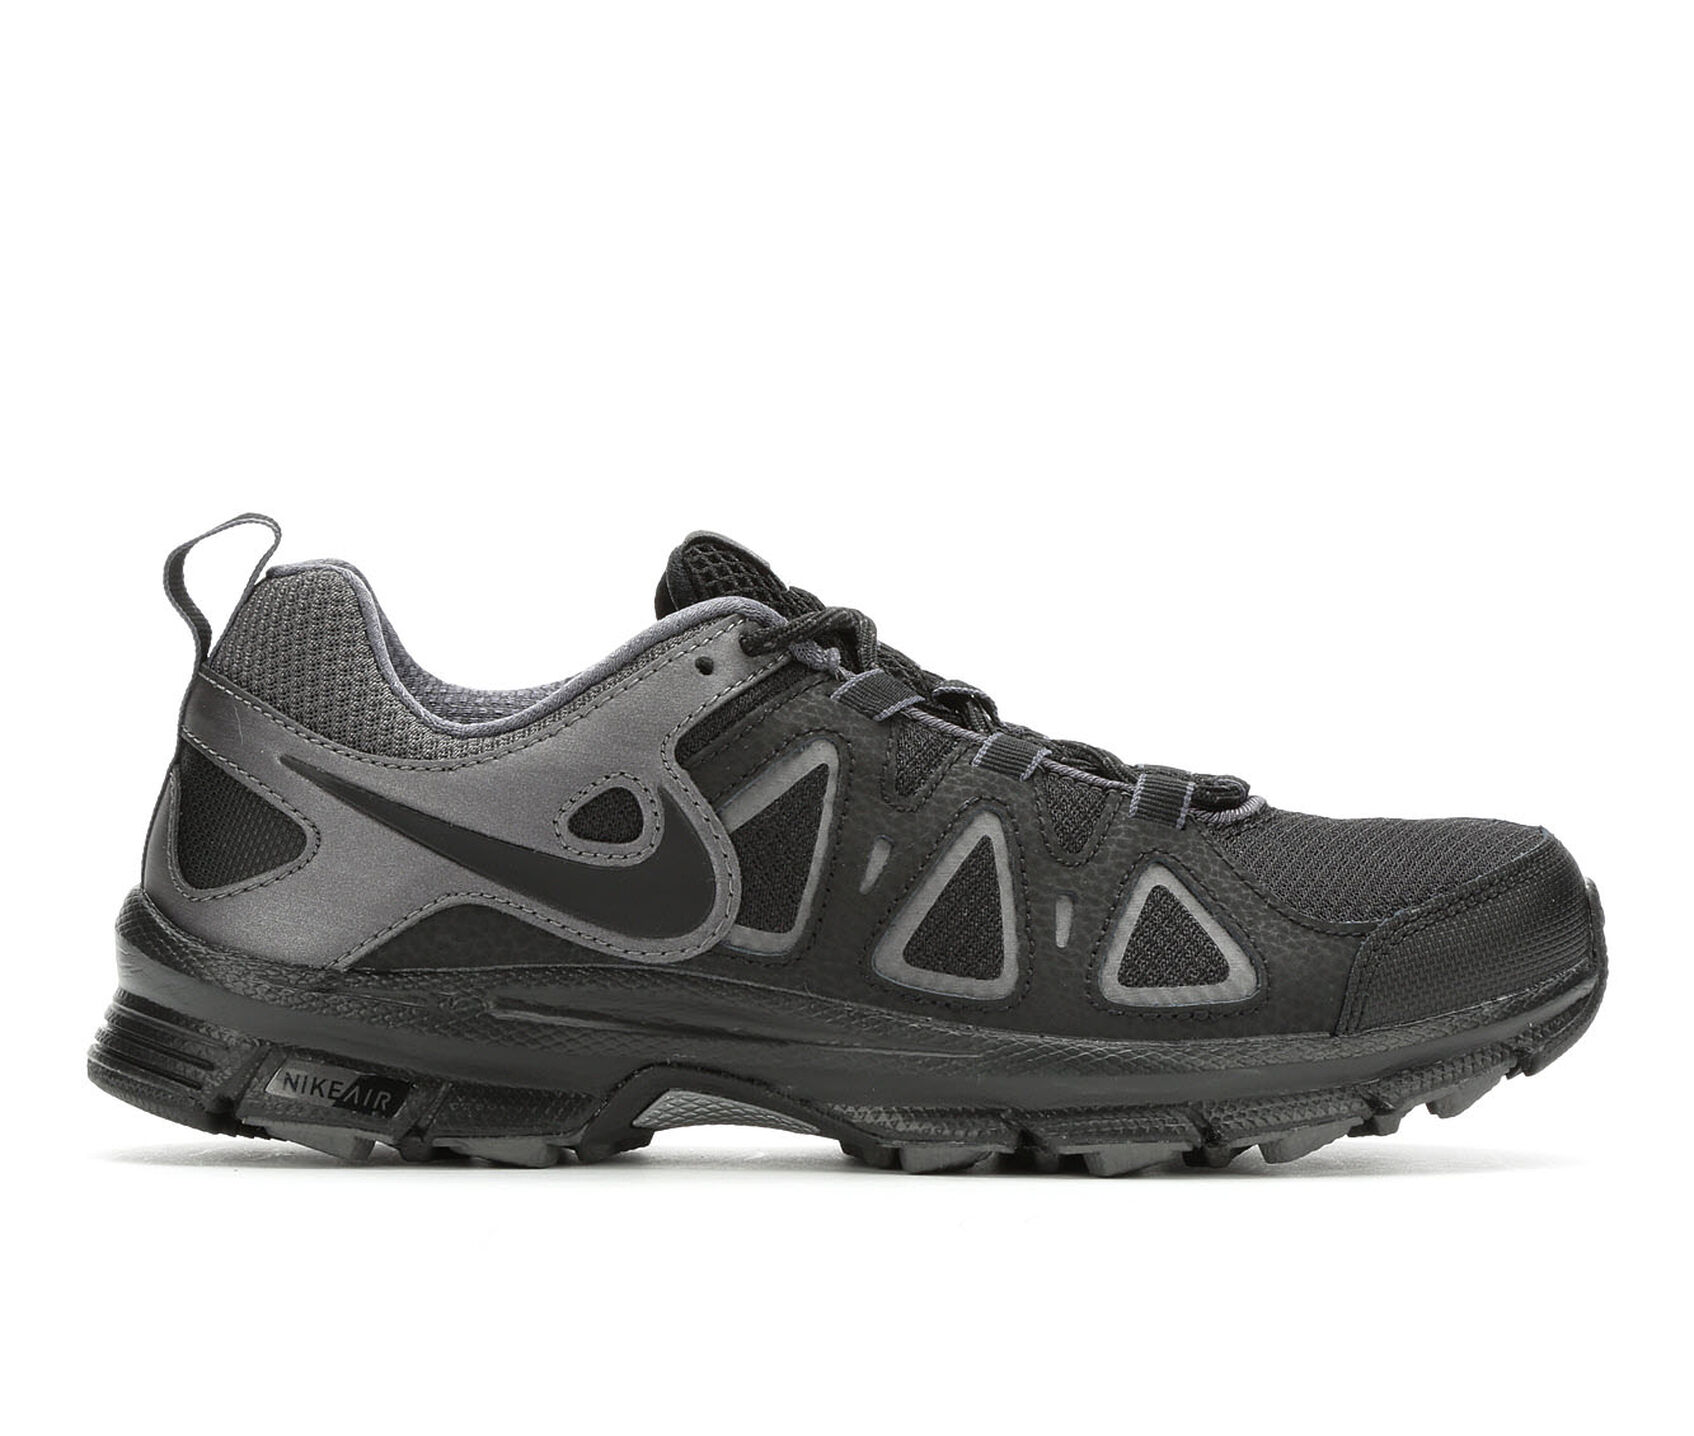 8583f0e0920 ... Nike Alvord 10 Trail Running Shoes. Previous